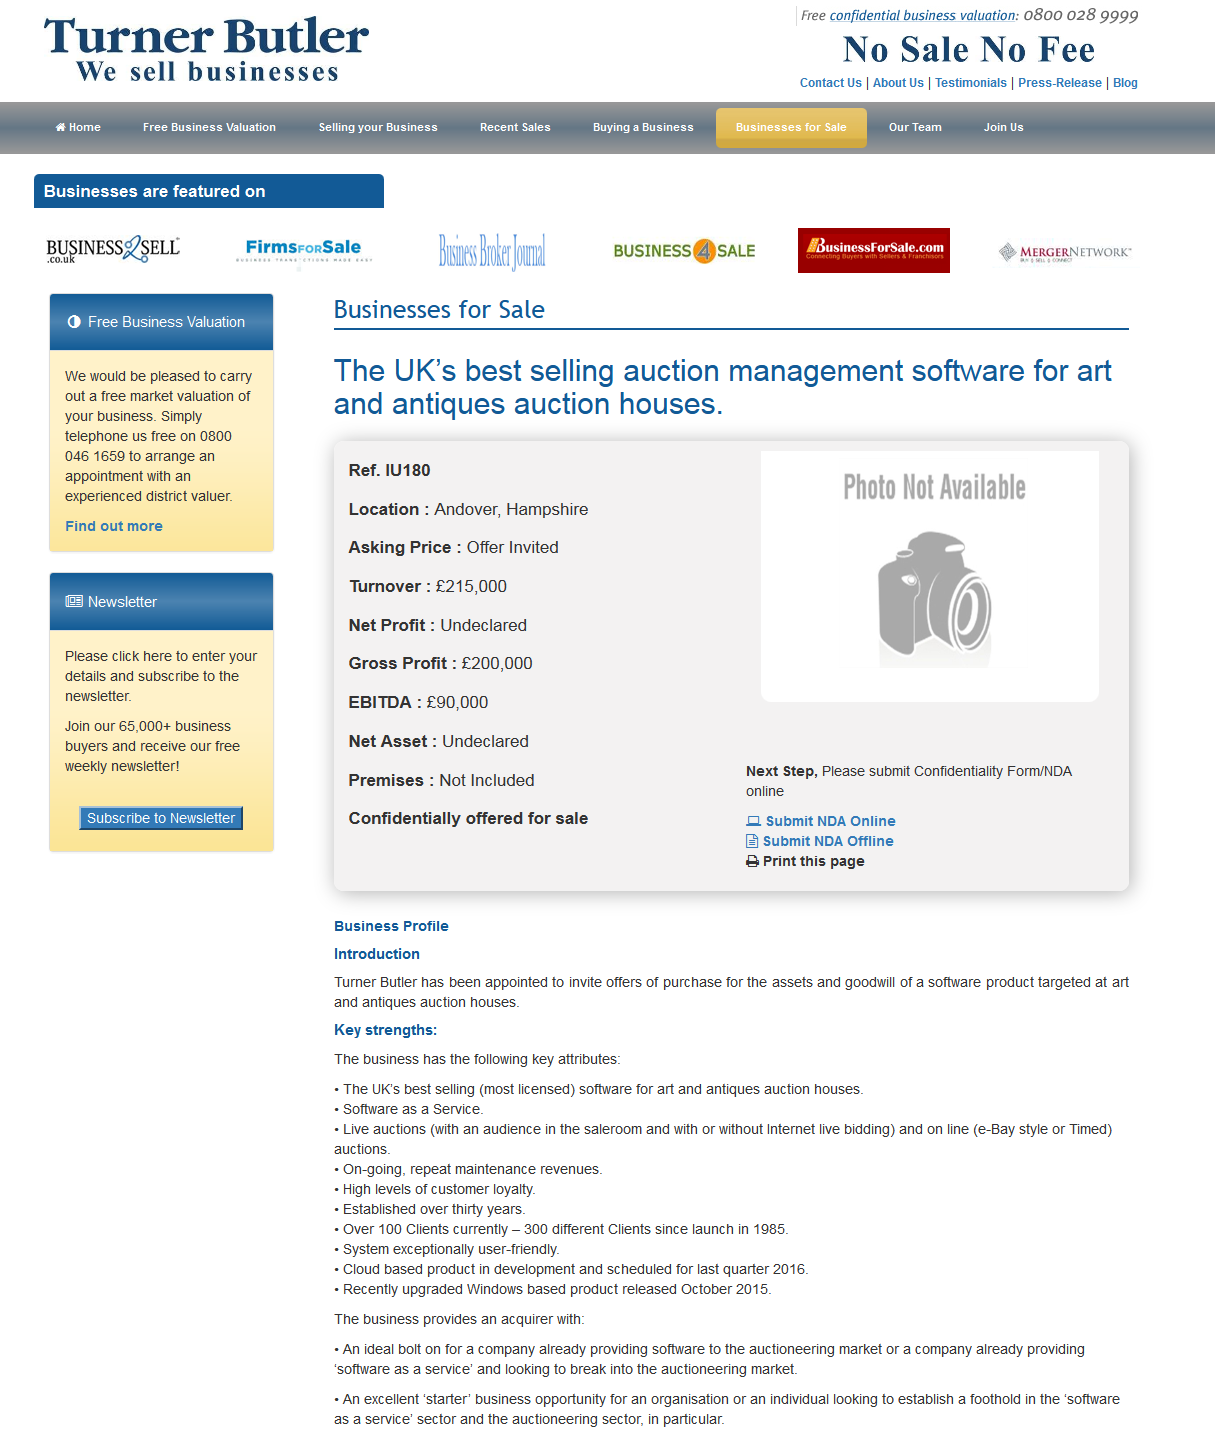 Businesses For Sale The Uk S Best Selling Auction Management Software For Art And Antiques Auction House Business Valuation Sell Your Business Success Business